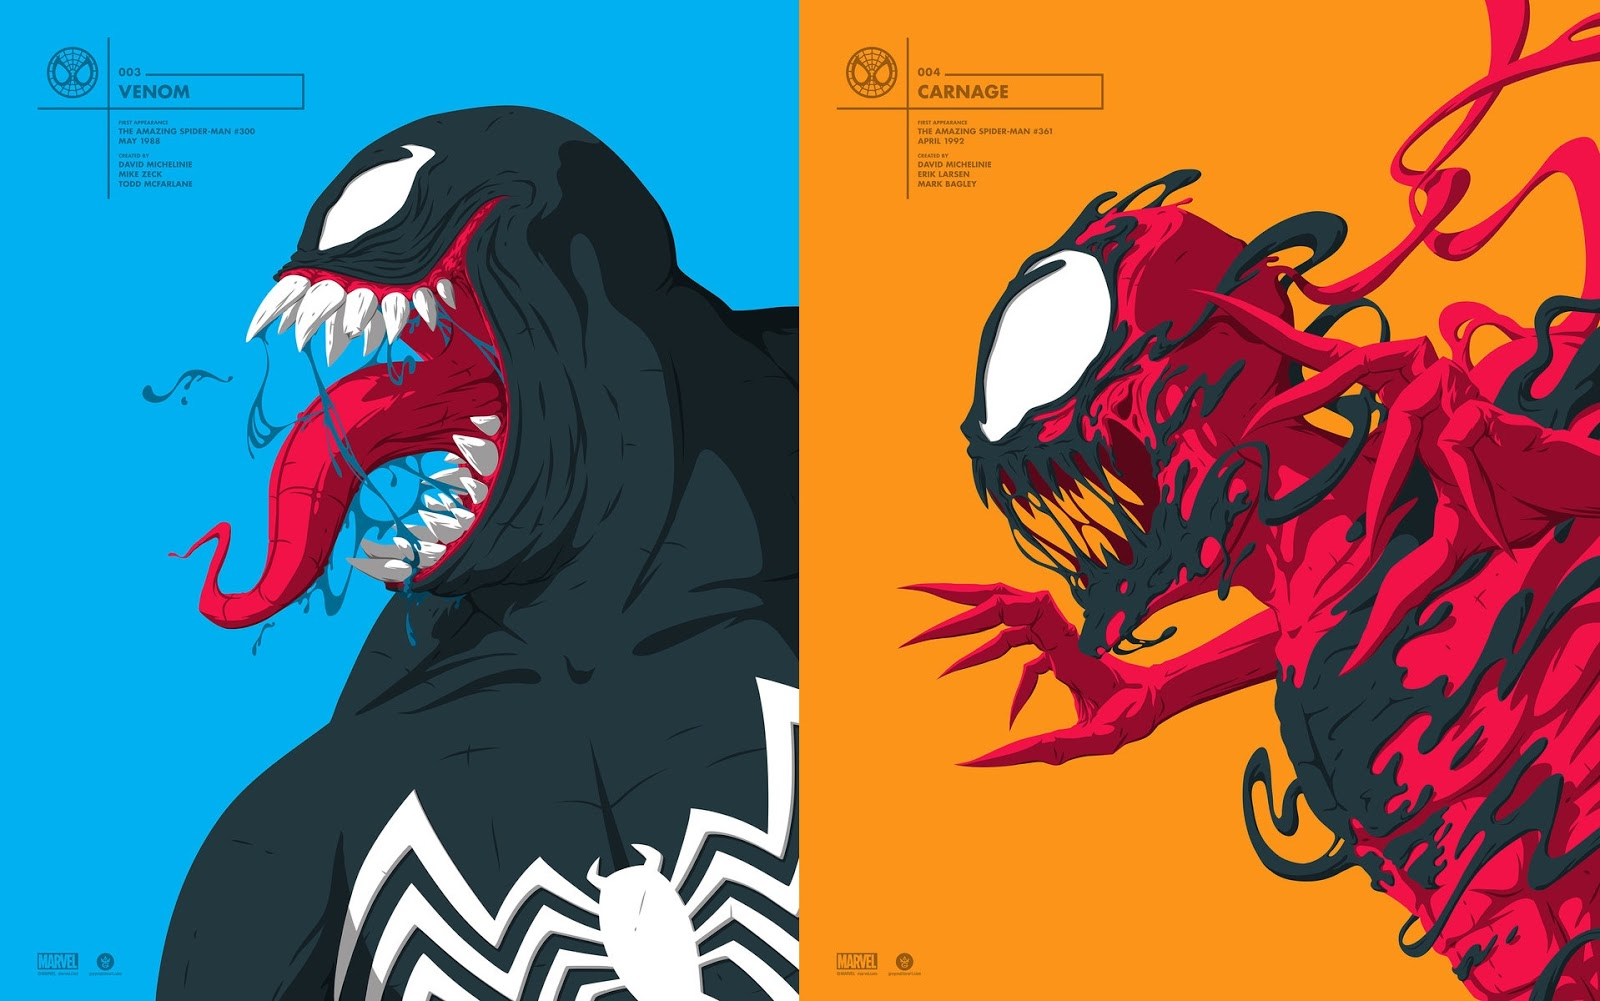 30066ae4529 NYCC 2017 Exclusive Star-Lord, Venom & Carnage Marvel Faceoff Portrait  Screen Prints by Florey x Grey Matter Art